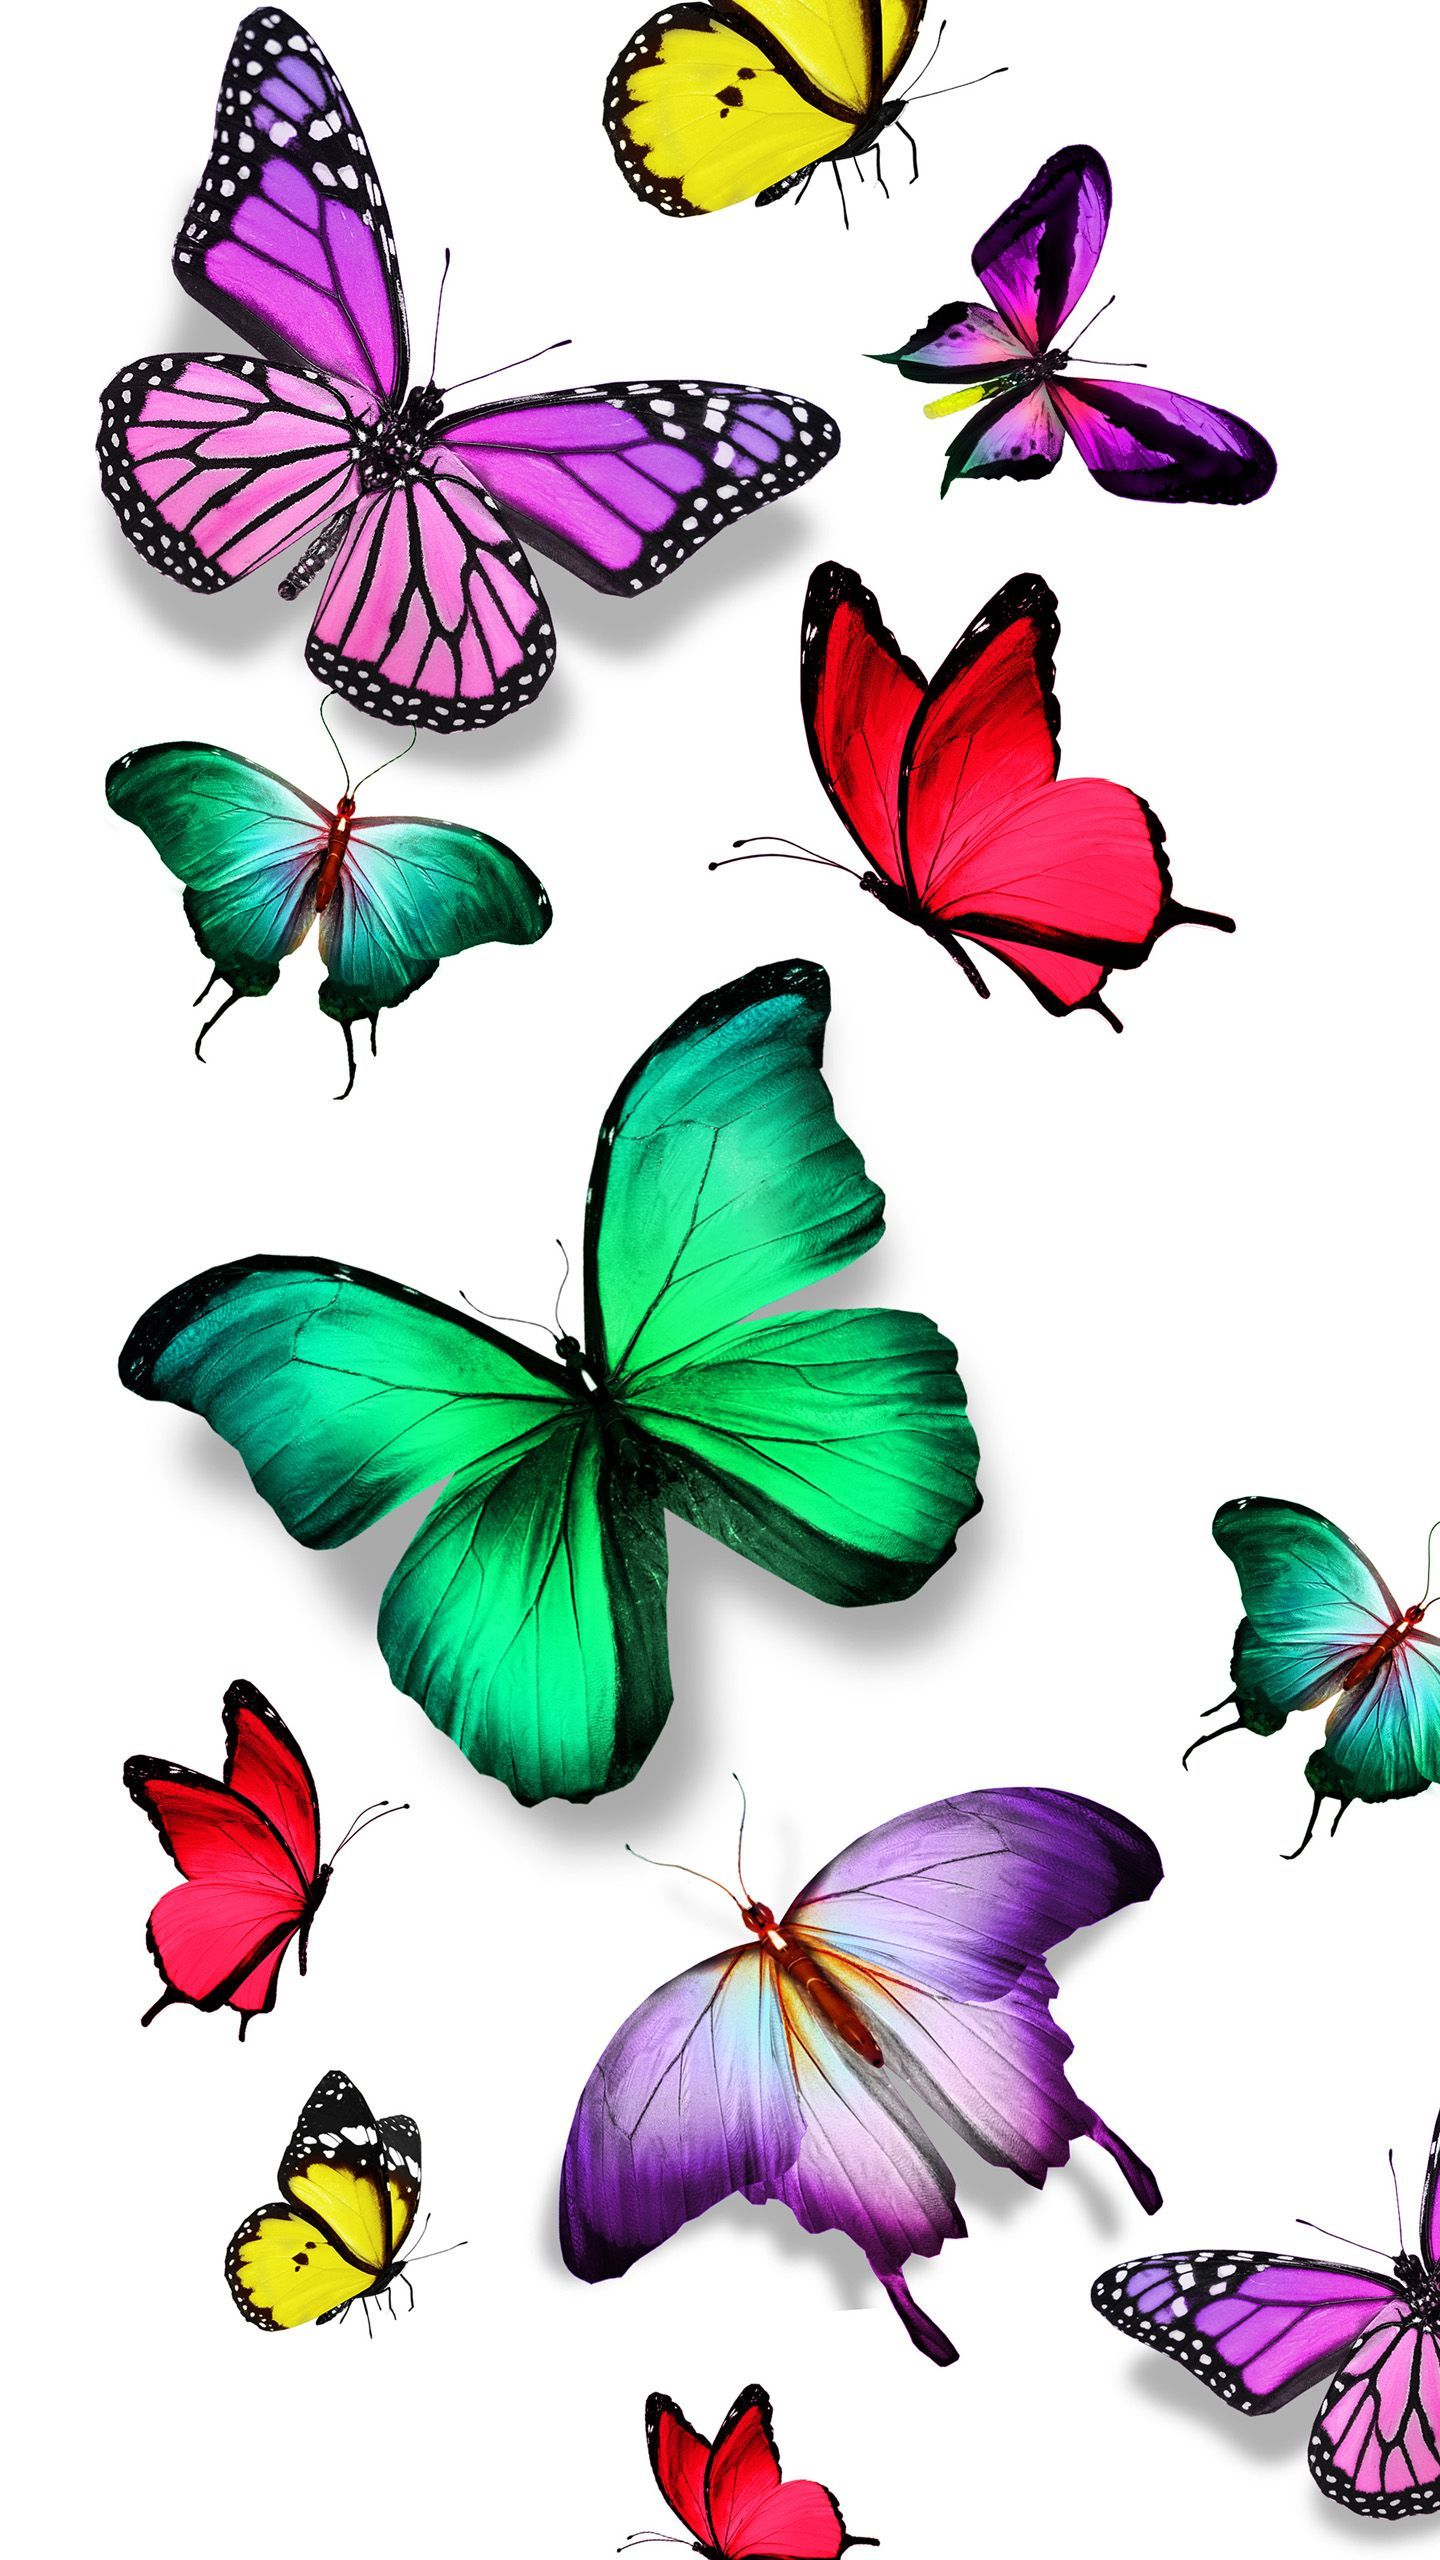 Butterfly Live Wallpaper http://wallpapers-and-backgrounds.net/butterfly-live-wallpaper